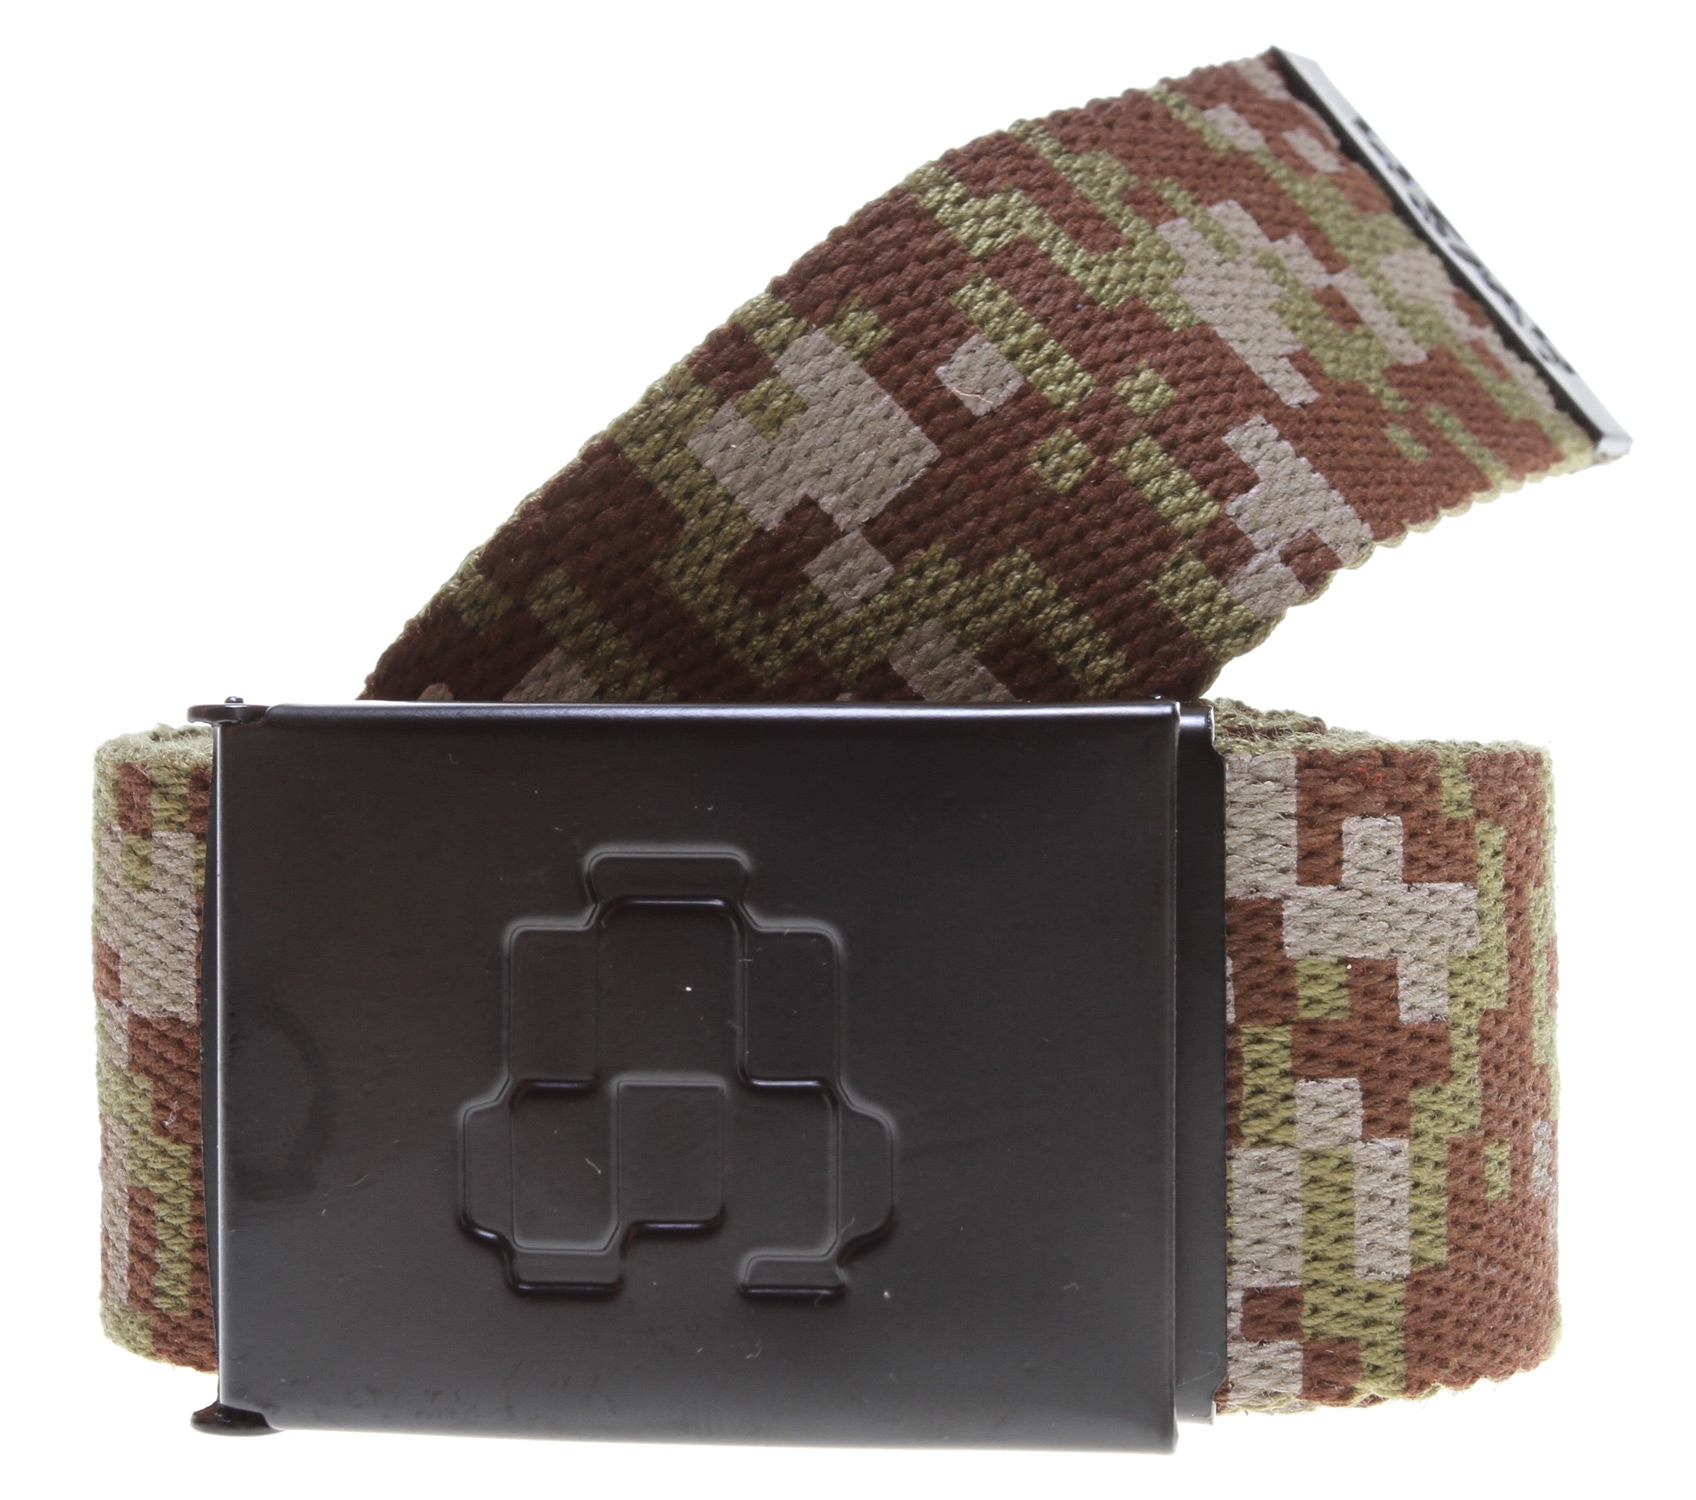 Nylon Webbing with a custom buckle with a bottle opener - $10.95